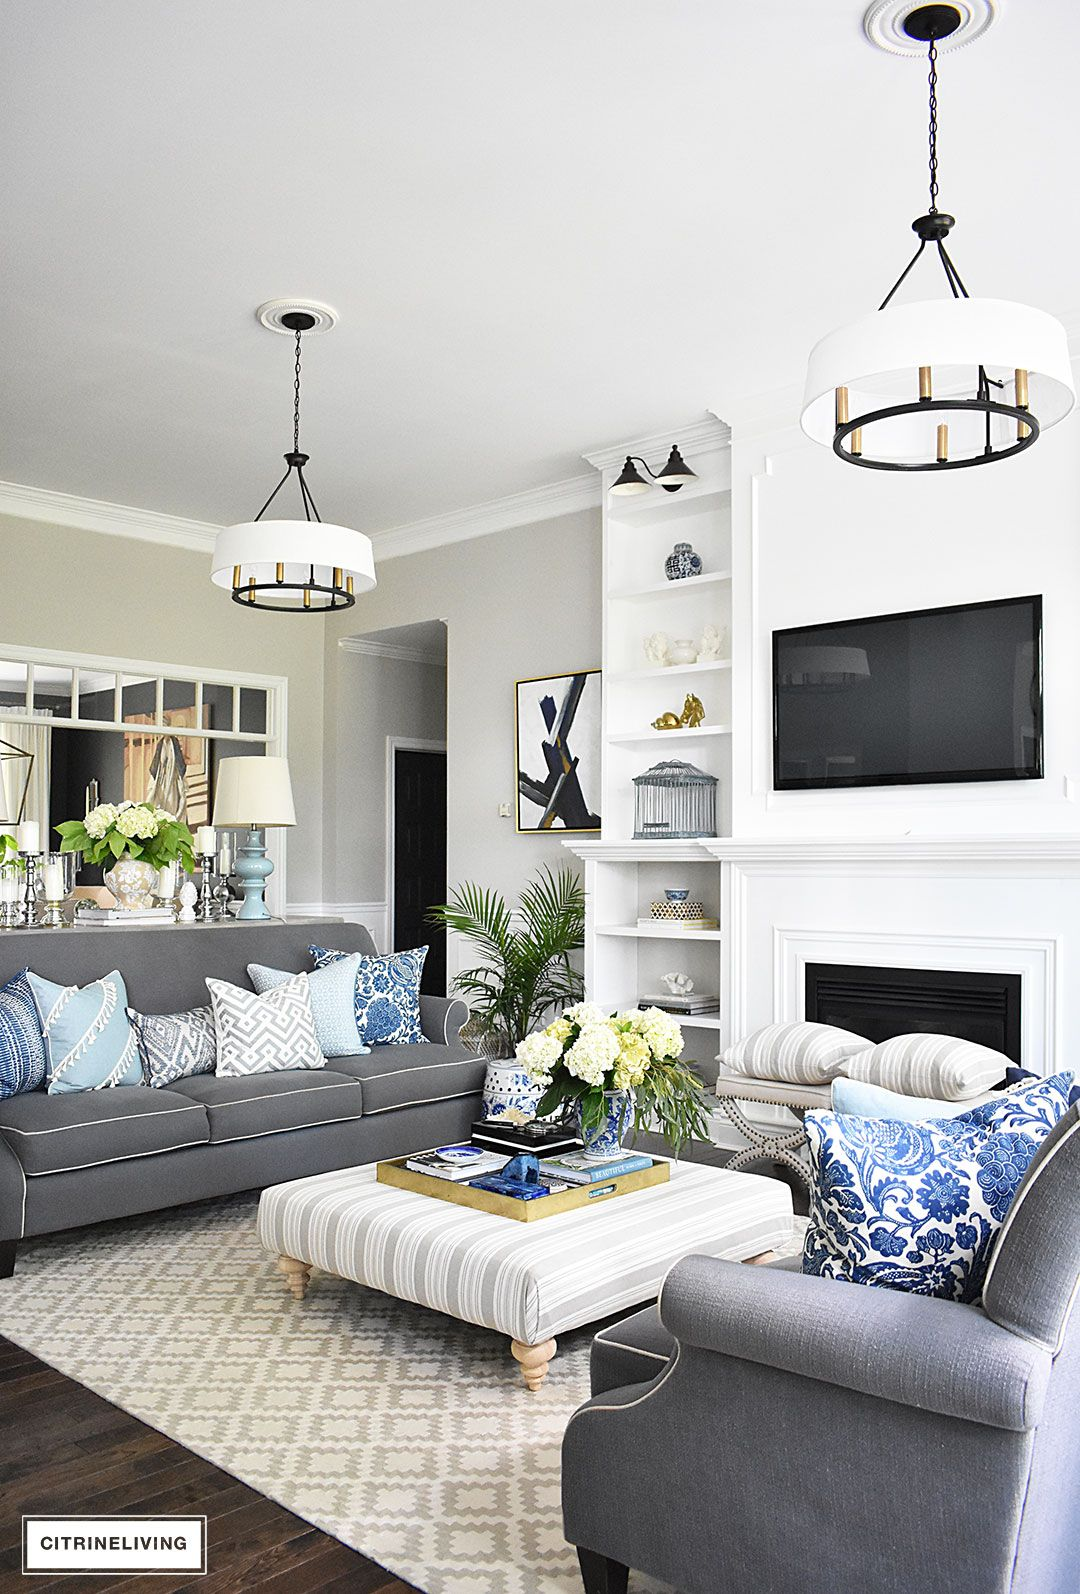 20 fresh ideas for decorating with blue and white for Living room ideas blue